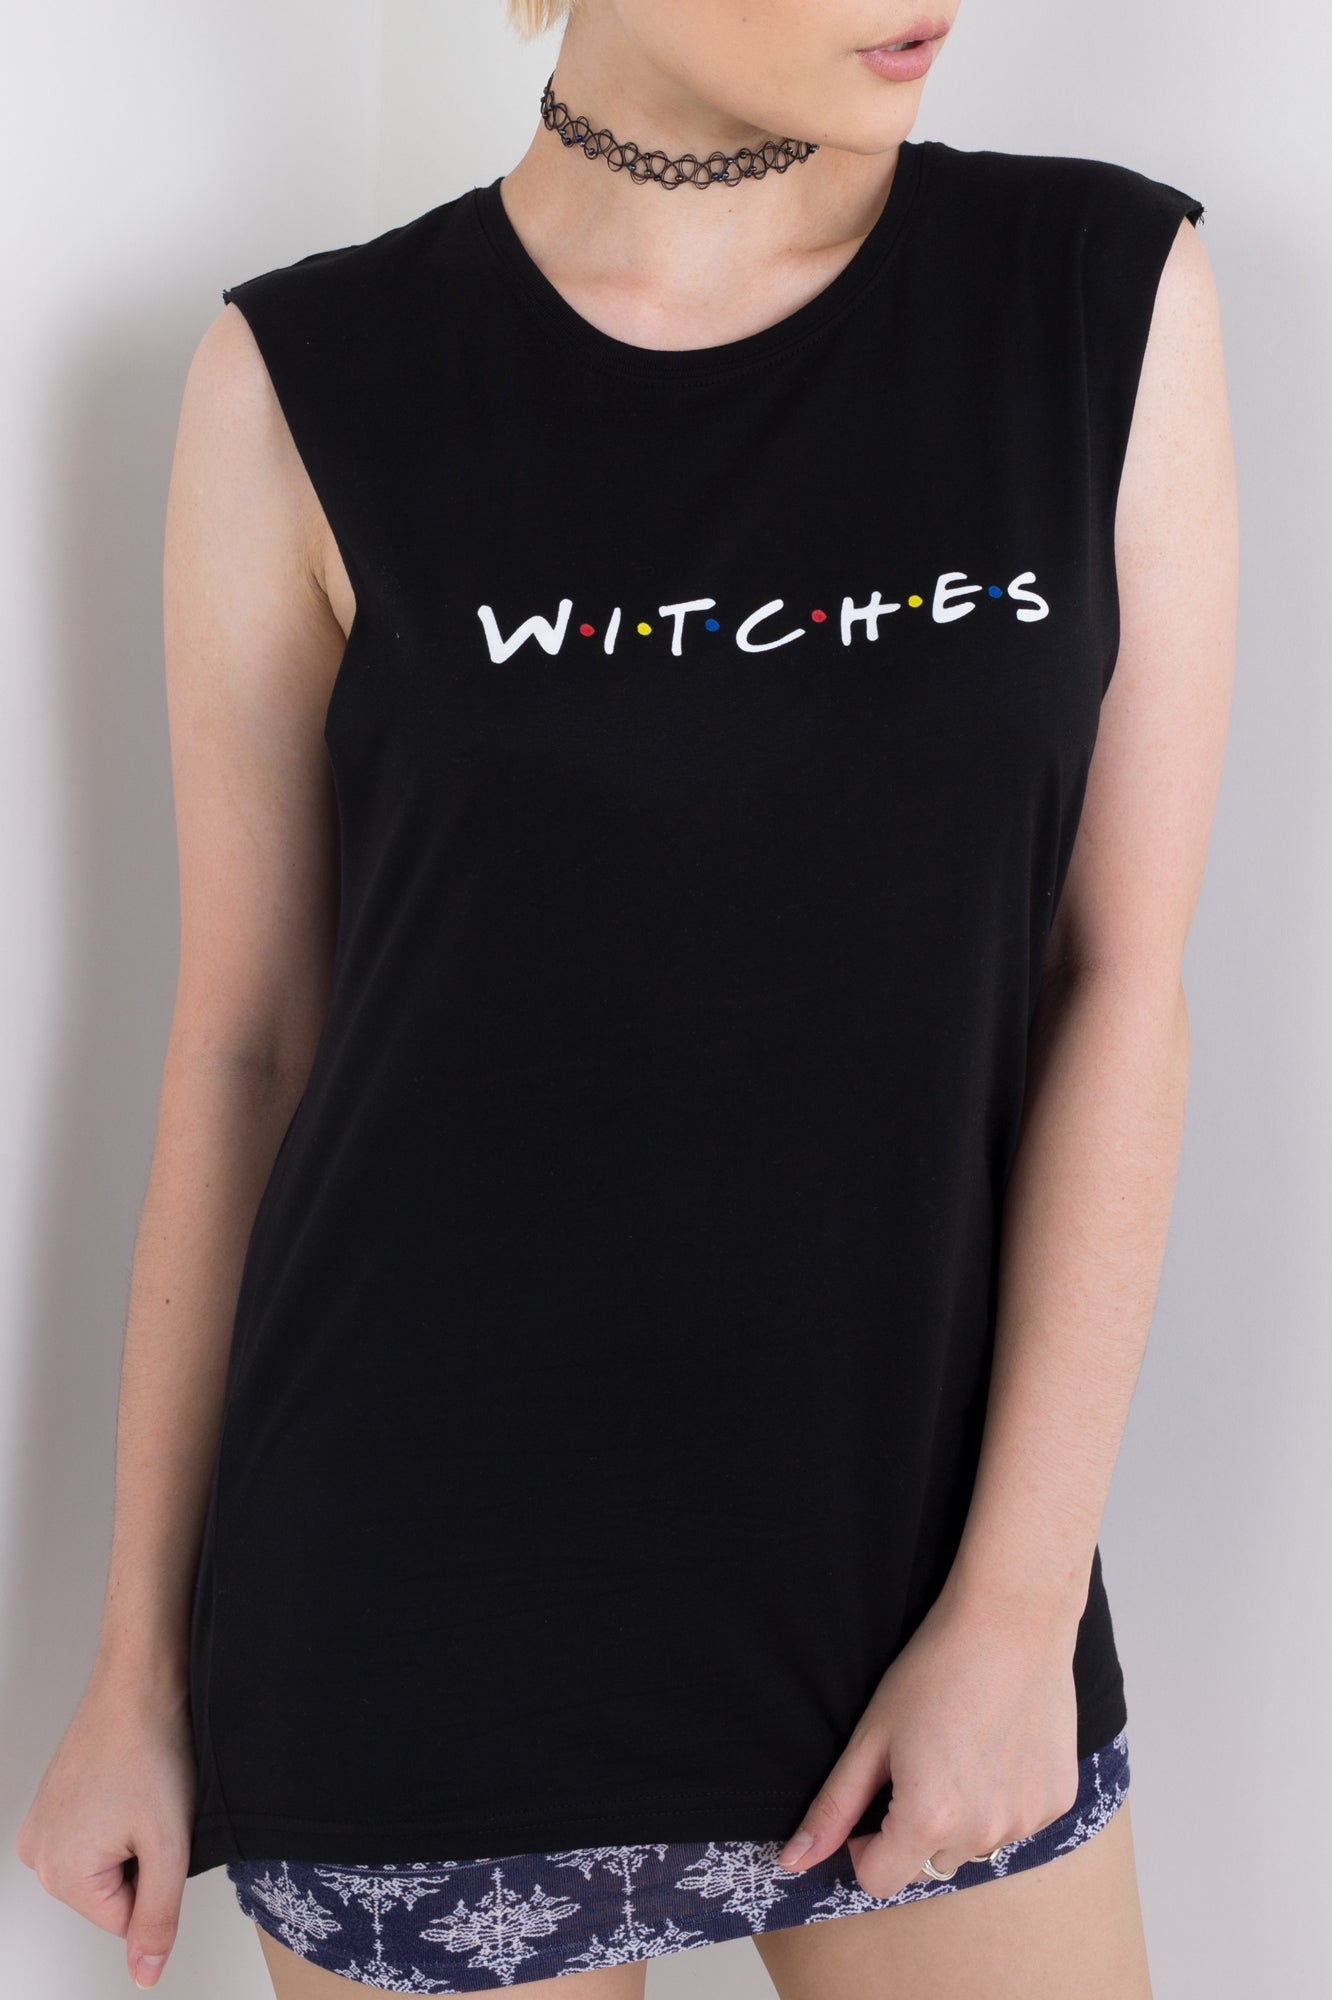 Witches Tank